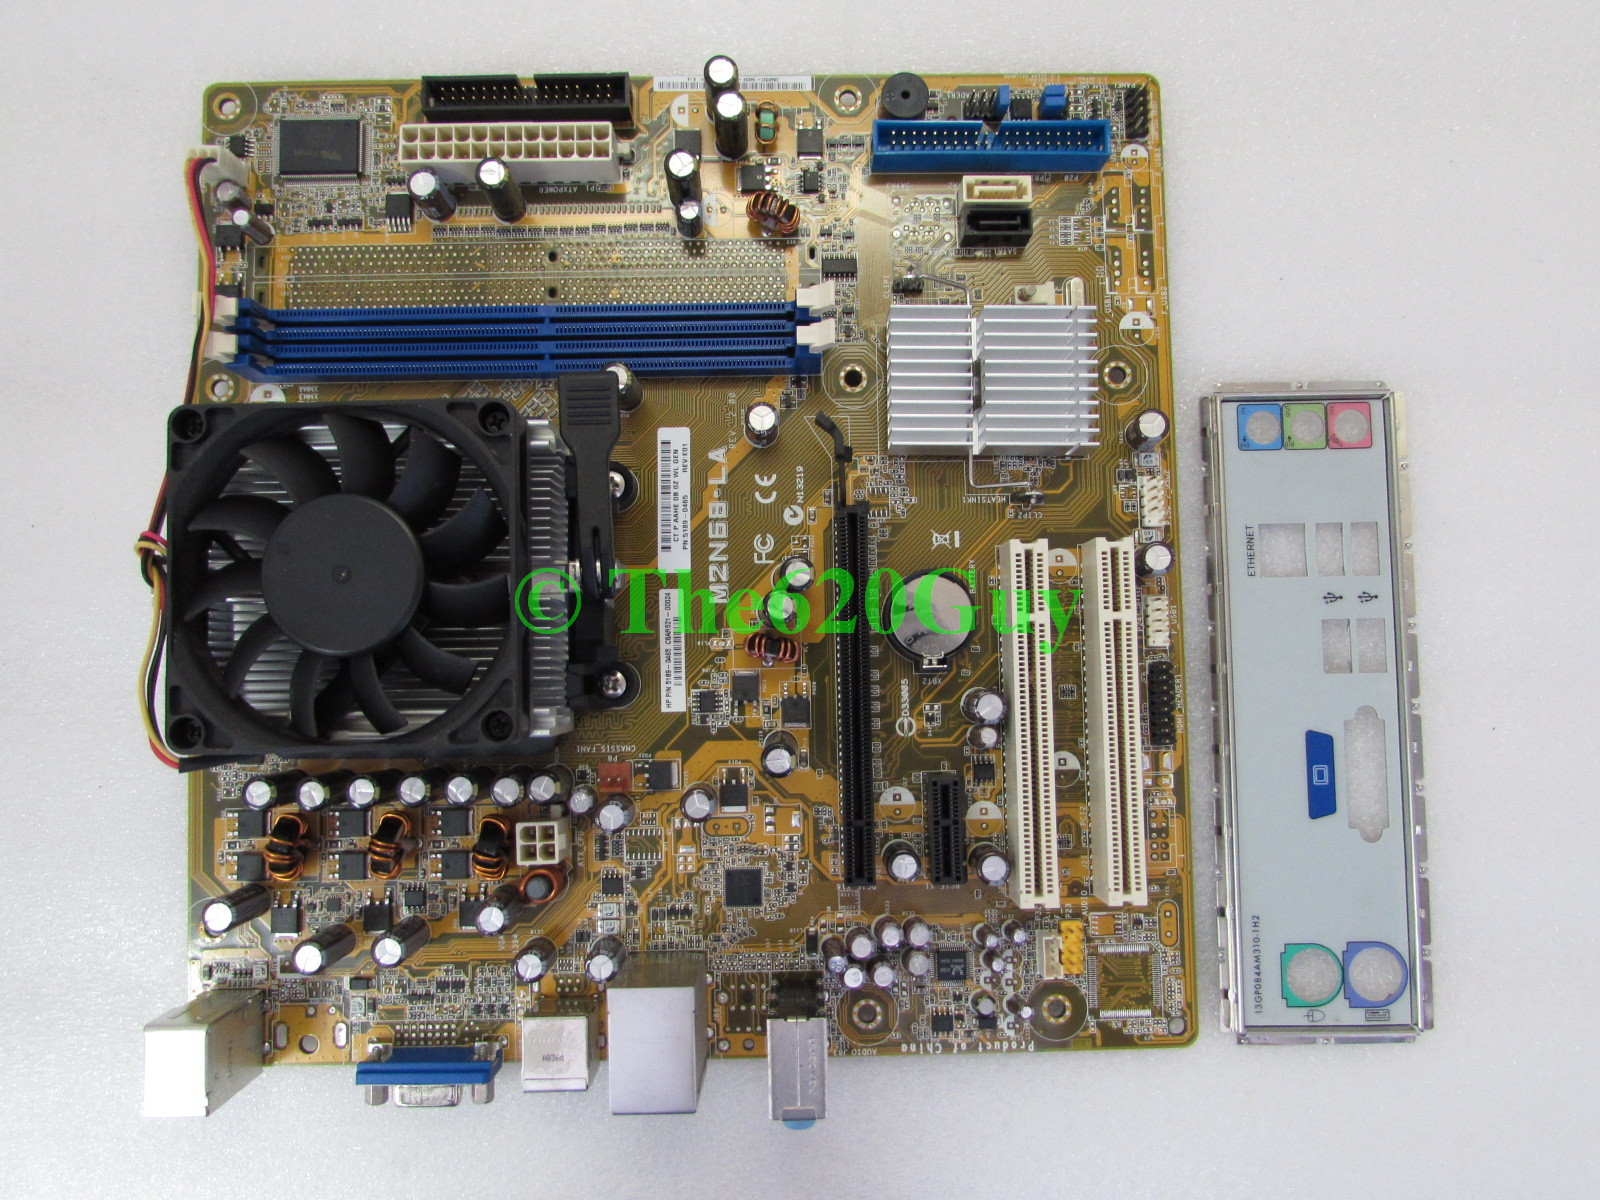 Geforce 6150se nforce 430